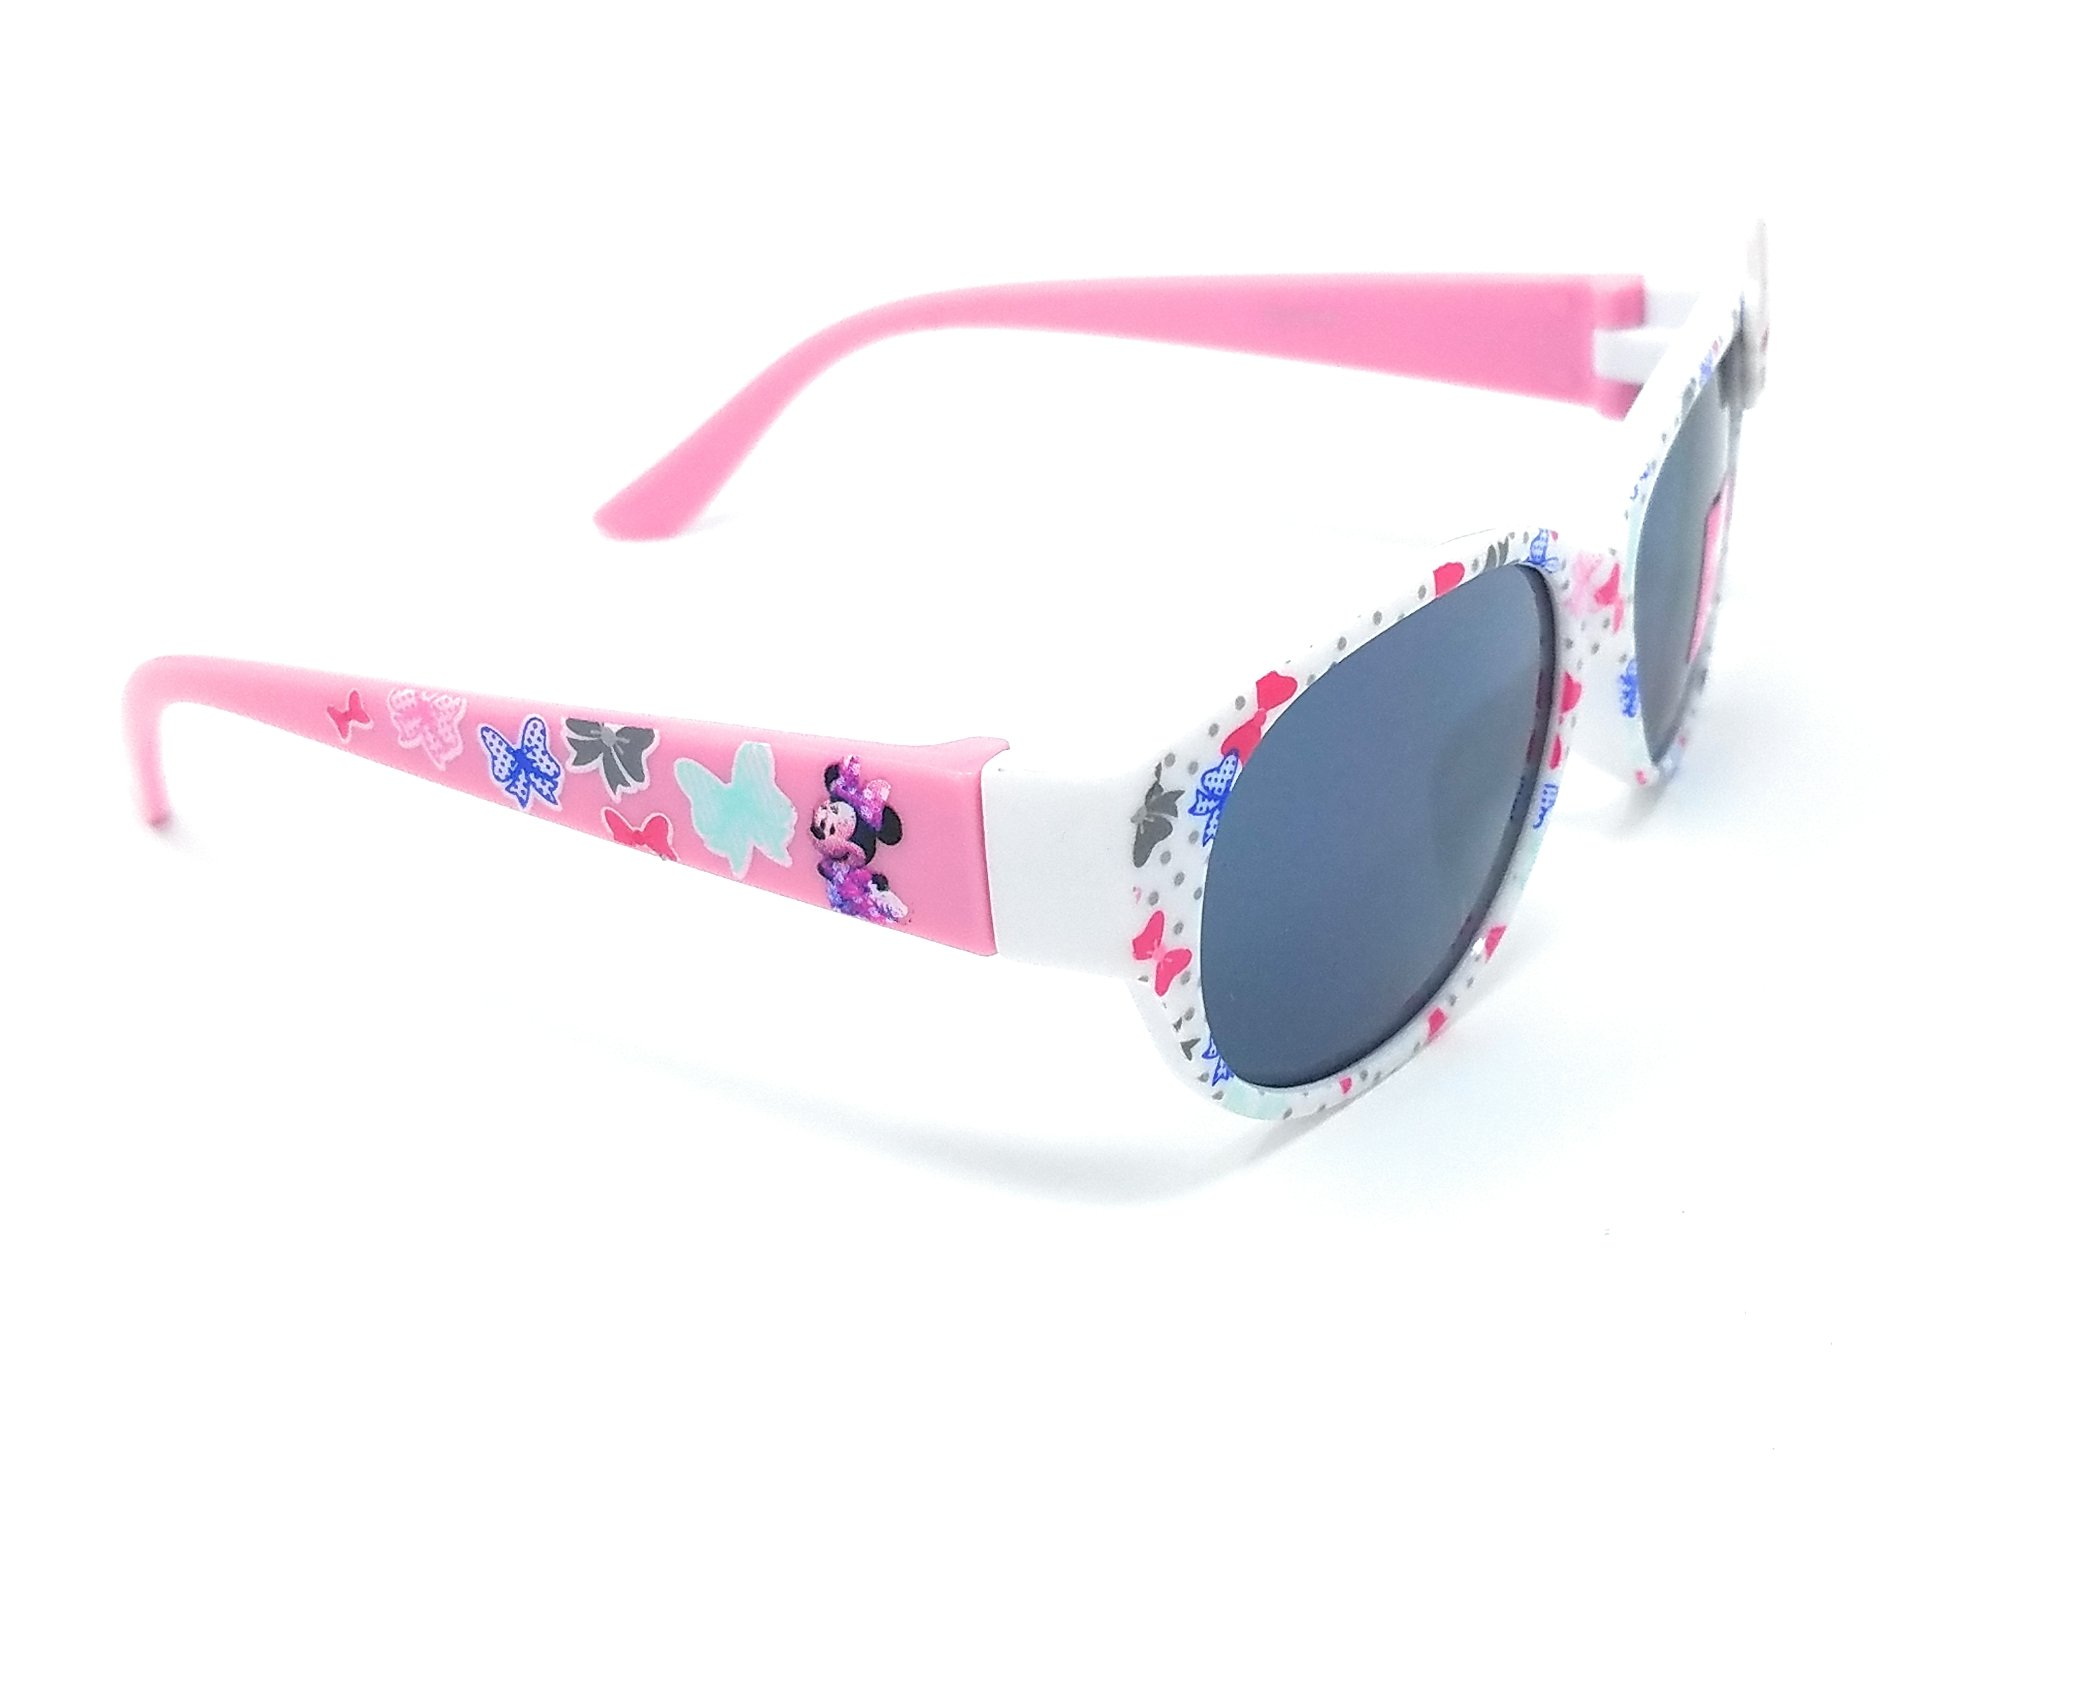 Disney Store Girl's Minnie Mouse Sunglasses in White and Pink with Cute Bow by Pan Oceanic Eyewear LTD (Image #3)